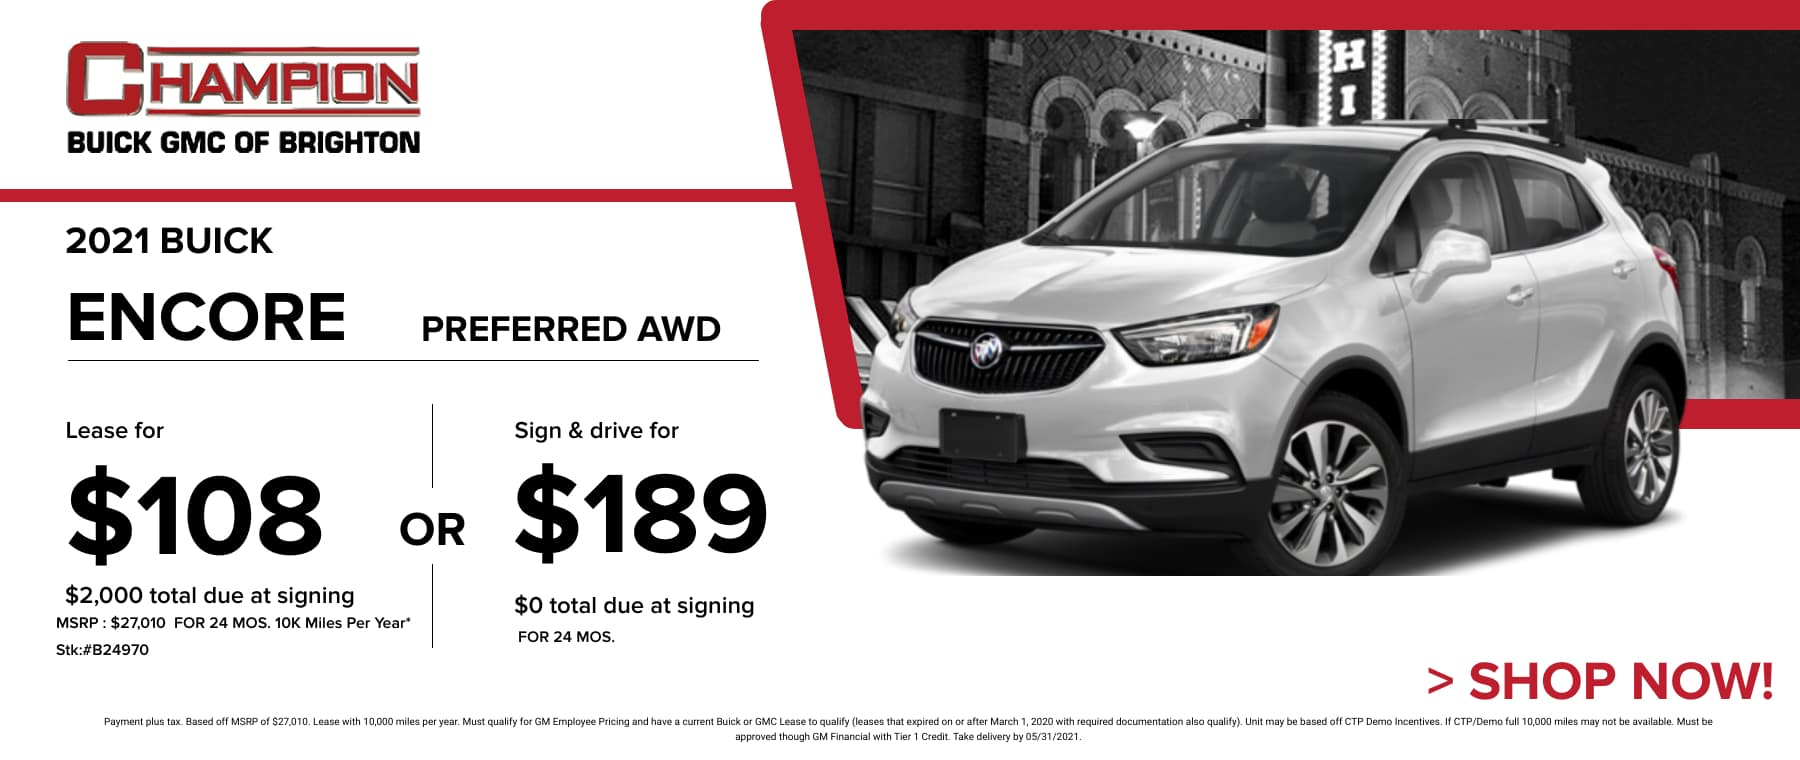 2021 Buick Encore Preferred AWD- Lease for just: $108 per month for 24 months $2,000 total due at signing. Sign & Drive for $189 per month for 24 months. *Stock #B24970. MSRP: $27,010